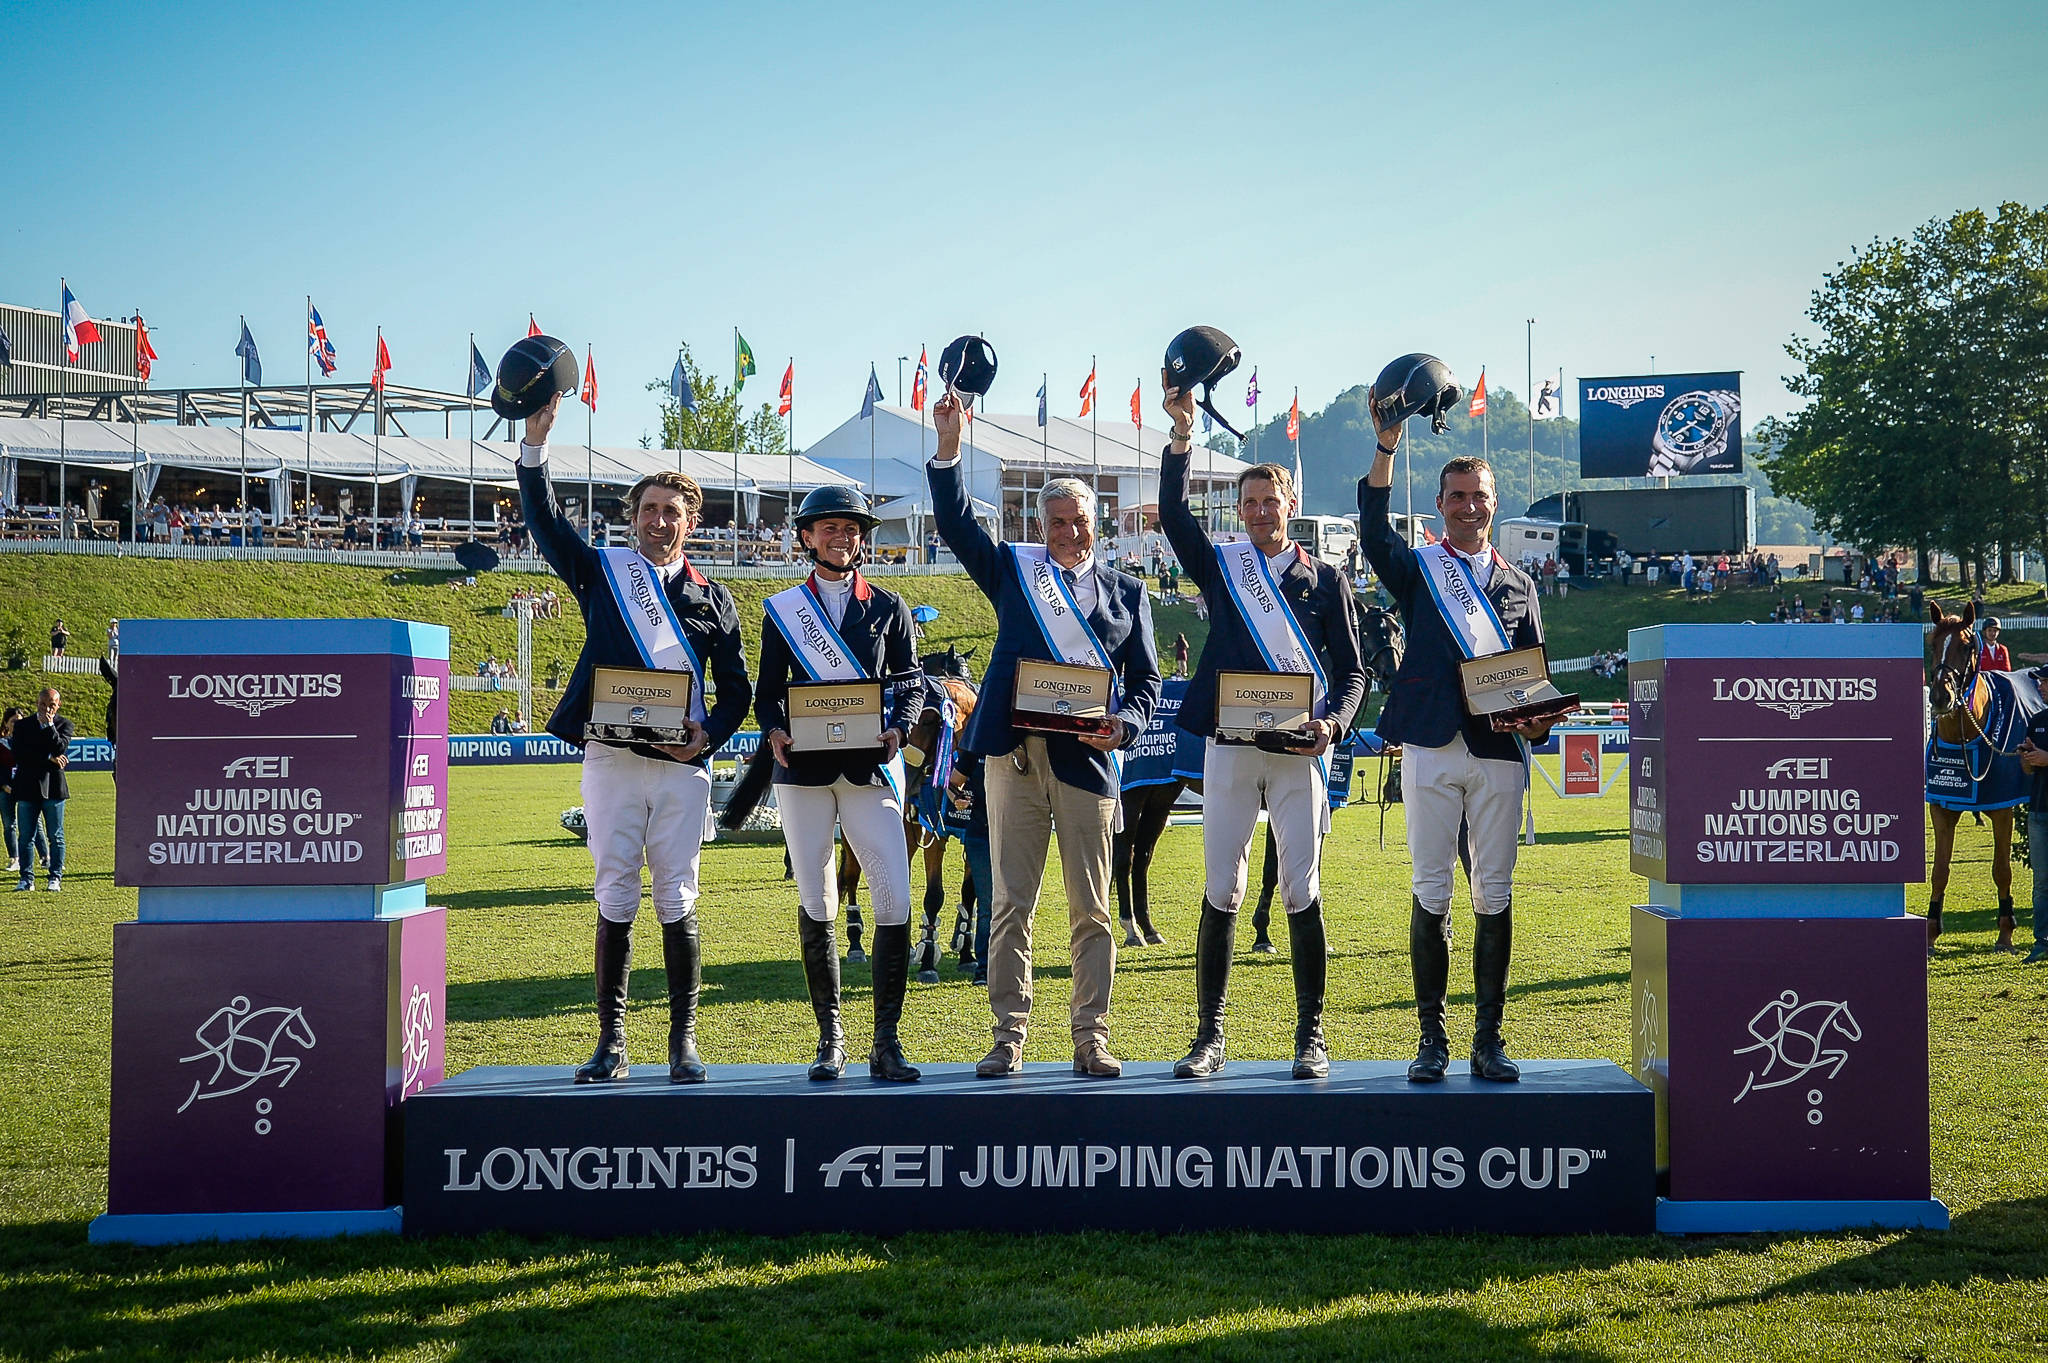 2019, CSIO St. Gallen, FEI Showjumping, Longines, Nations-Cup Switzerland, Springreiten